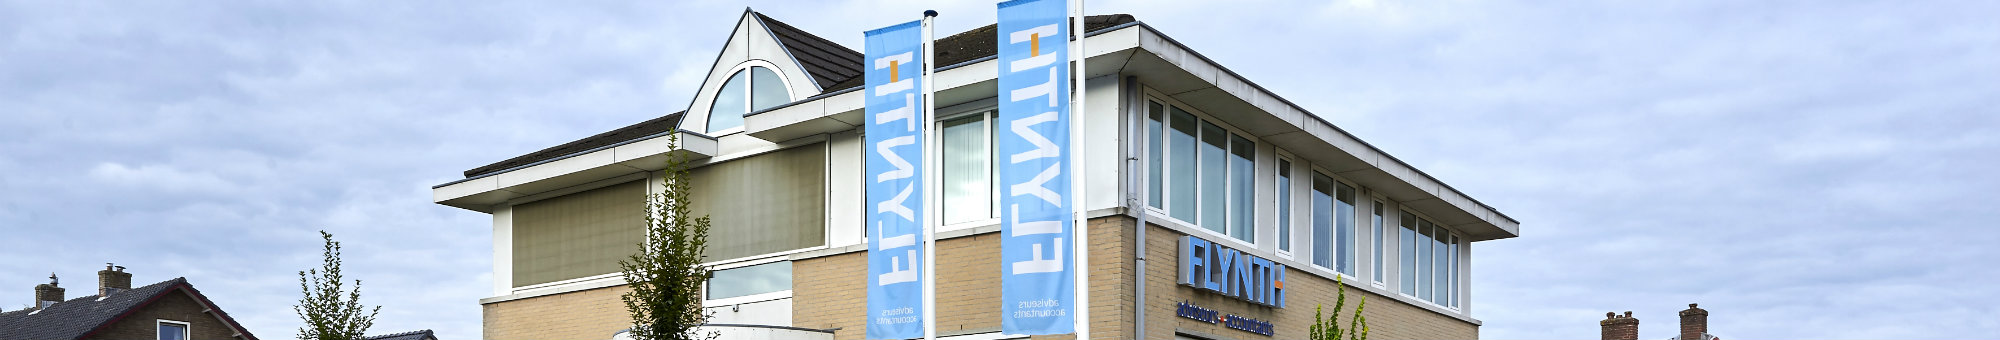 Flynth adviseurs en accountants in Ede